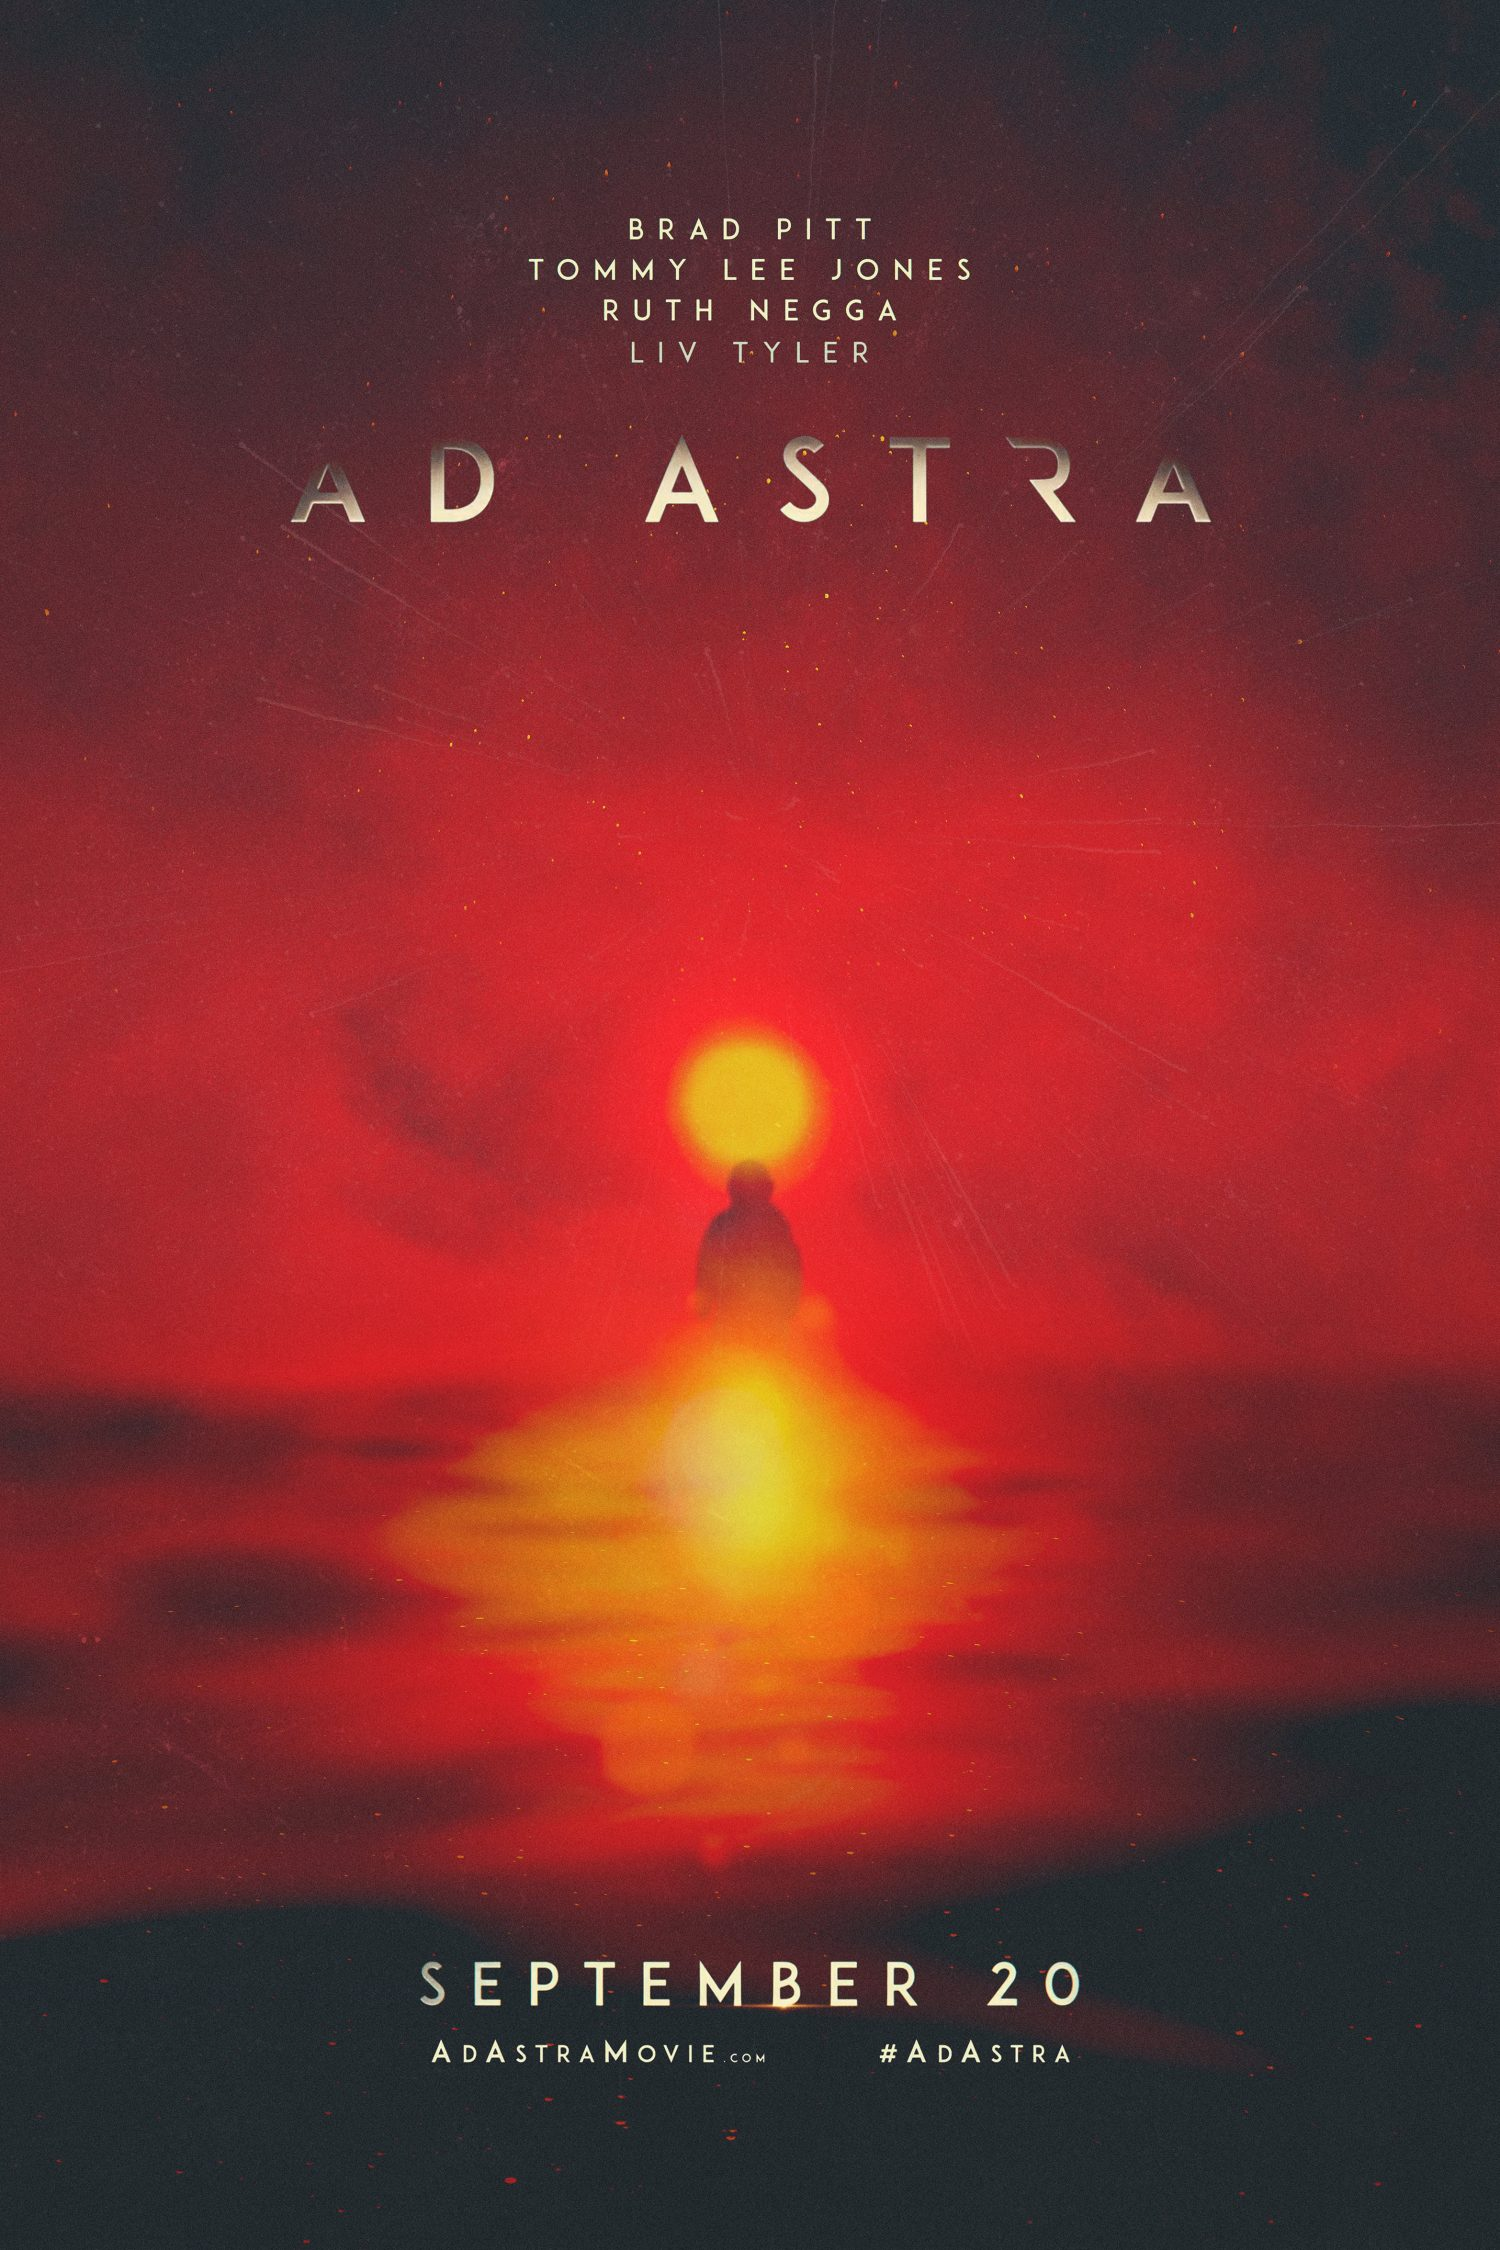 ad-astra-art-poster